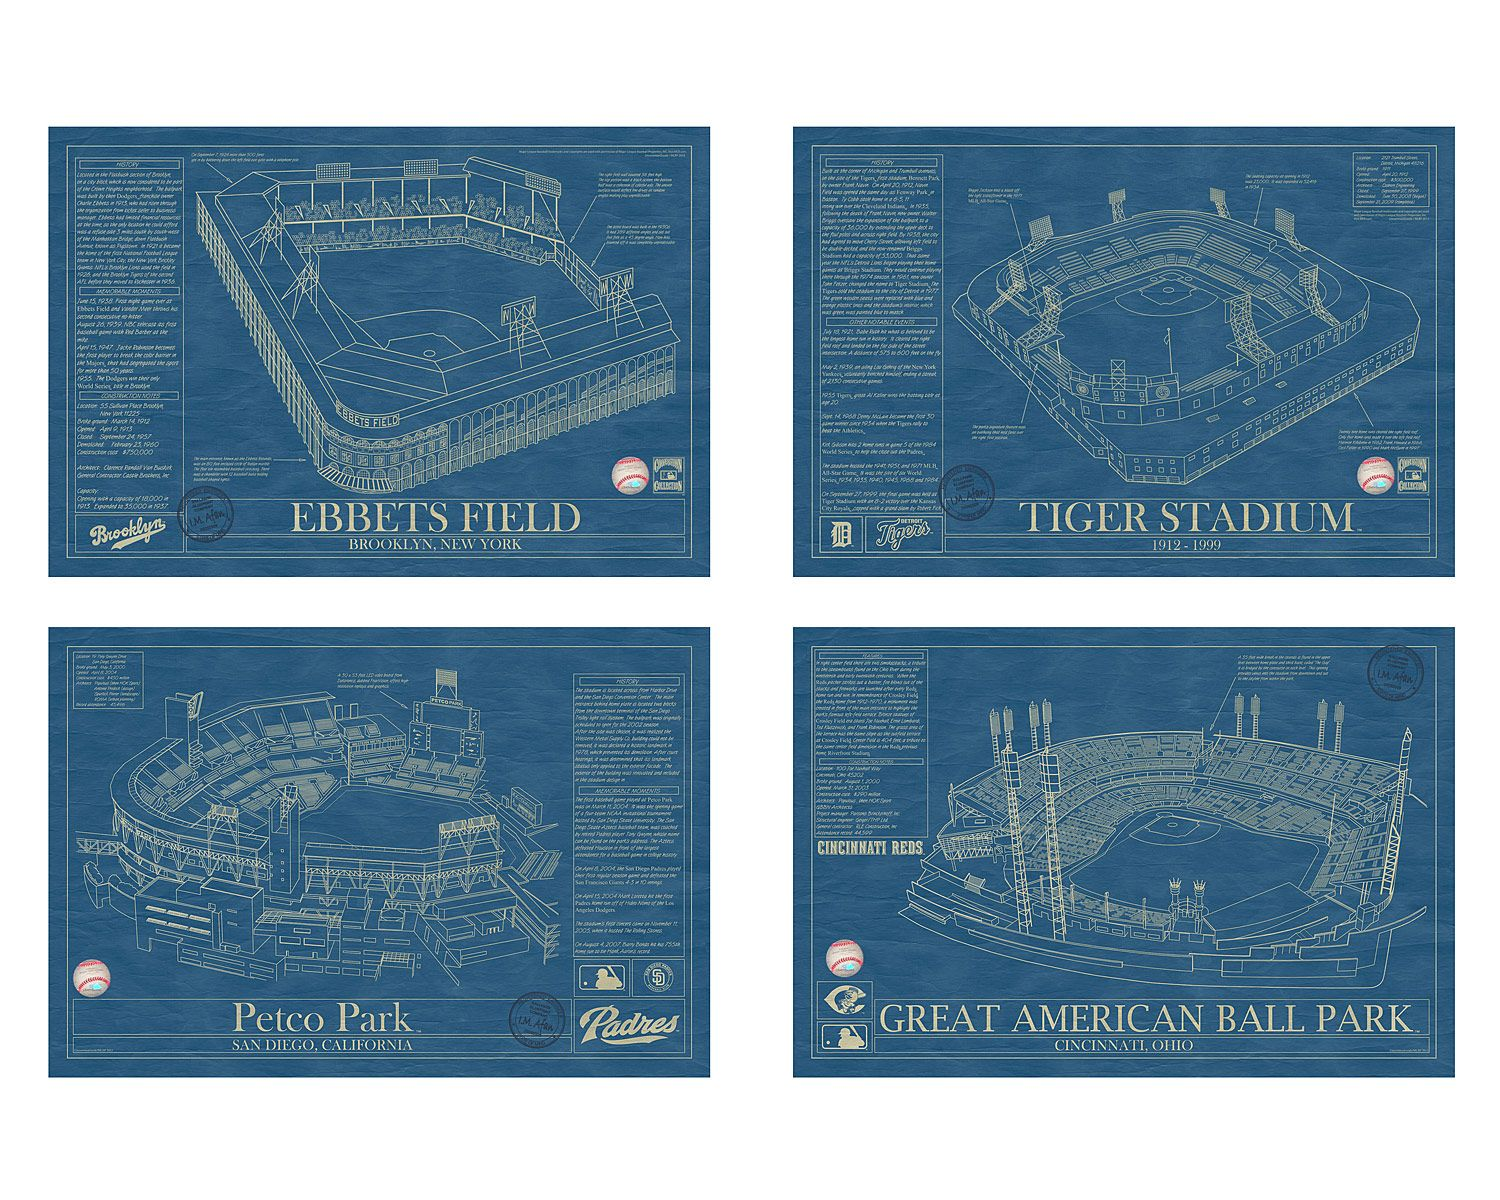 Baseball stadium blueprints baseball wall art baseball wall and gift ballpark blueprints baseball wall art yankee stadium malvernweather Image collections